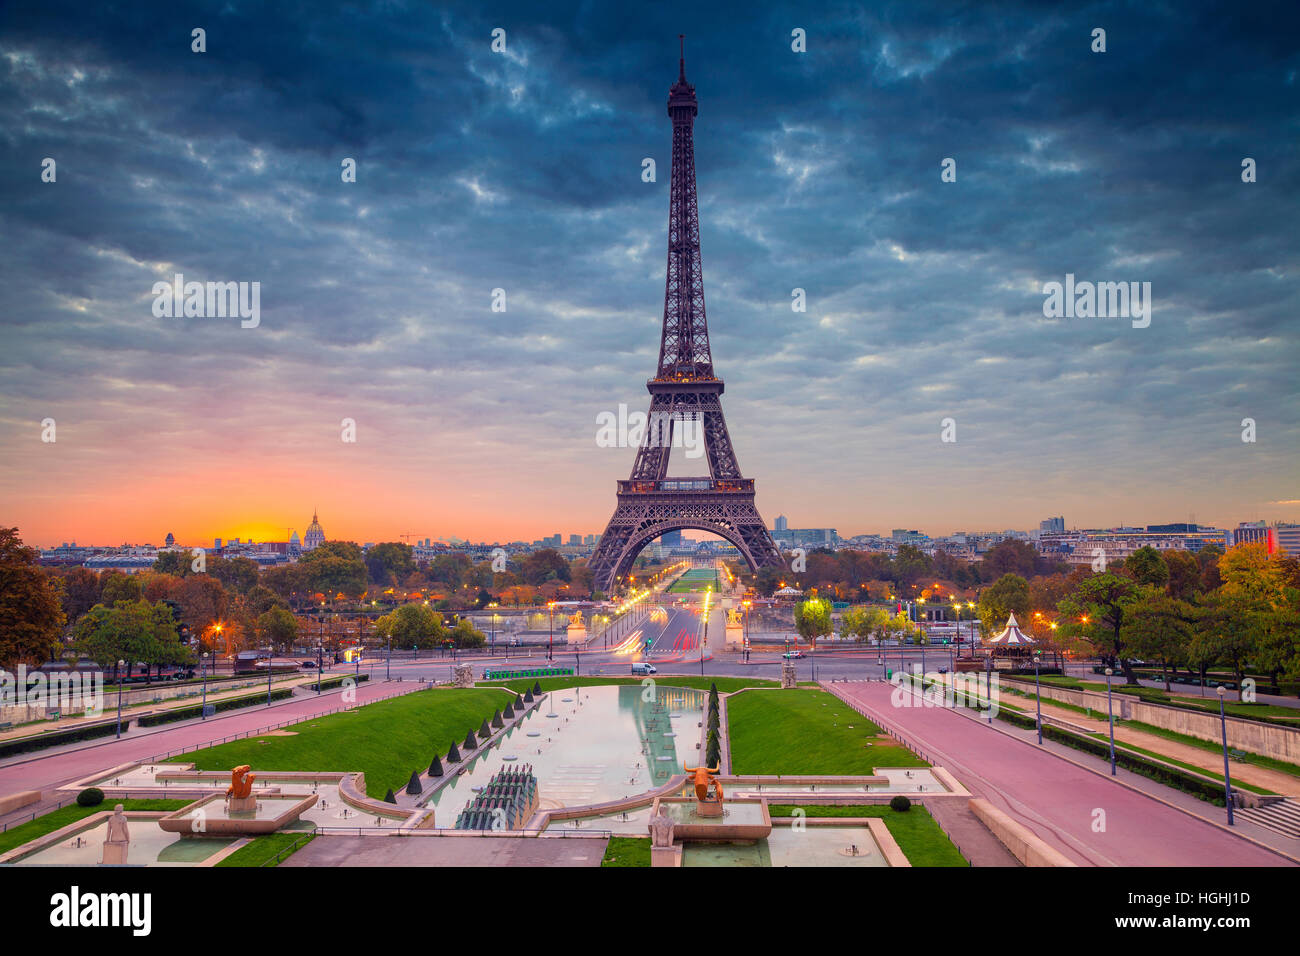 French photos french images alamy - Images de la tour eiffel au coucher de soleil ...